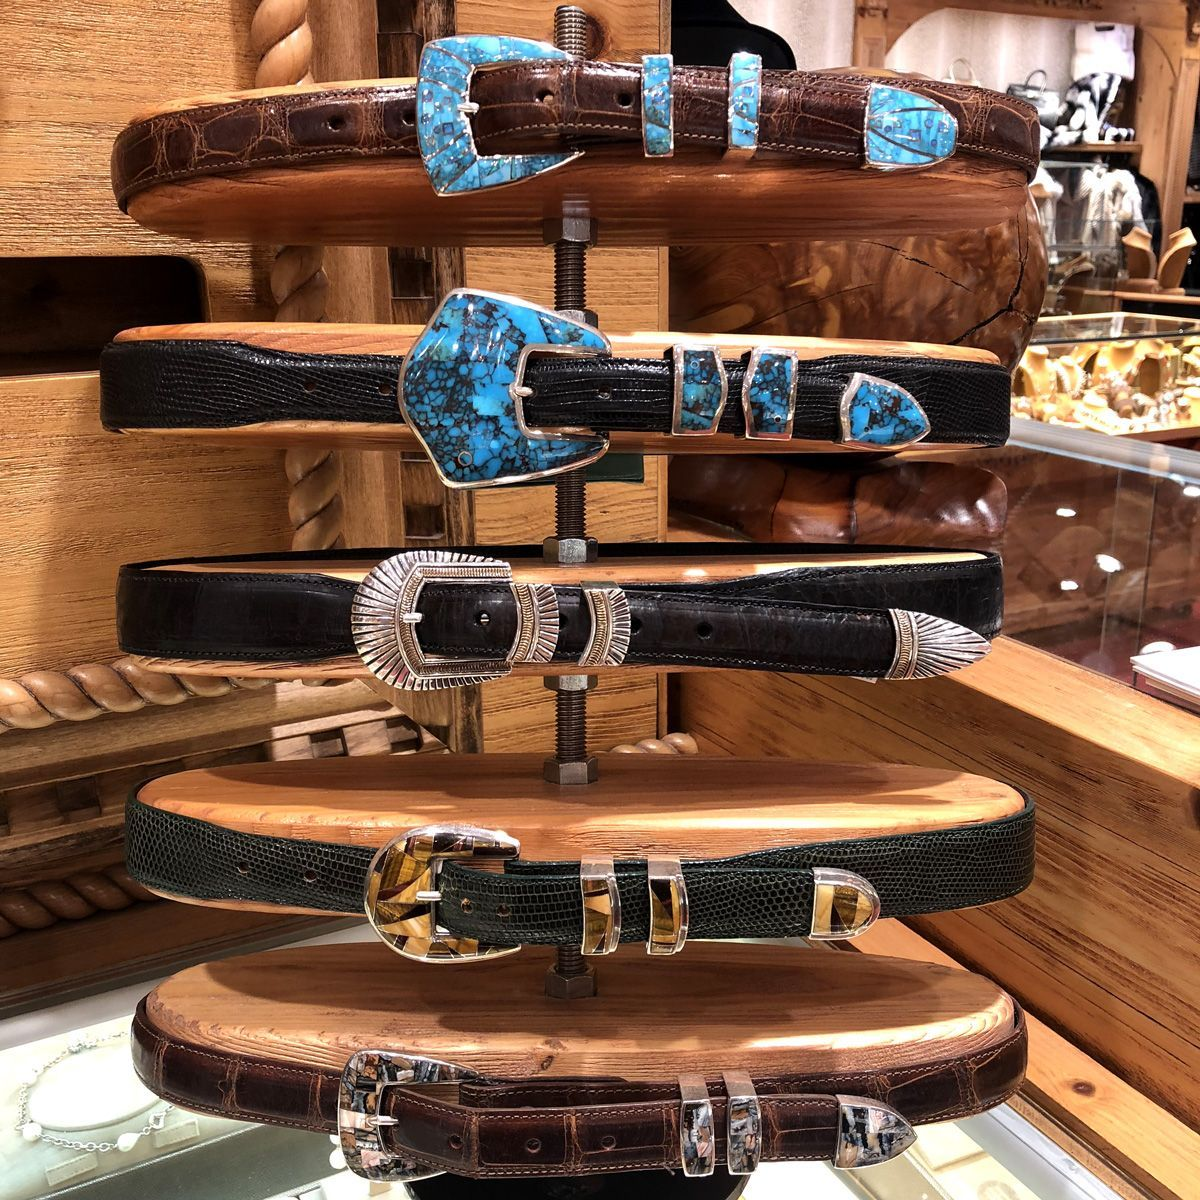 A look at some very cool 😎 belts and ranger sets at Mavericks! Turquoise, Tiger's eye and more! 👏 Happy Easter y'all! . . #easter #belts #rangerset #beltbuckle #buckle #leather #turquoise #tigerseye #silver #cowboy #cowgirl #accessories #santafe #mavericks #santafemavericks